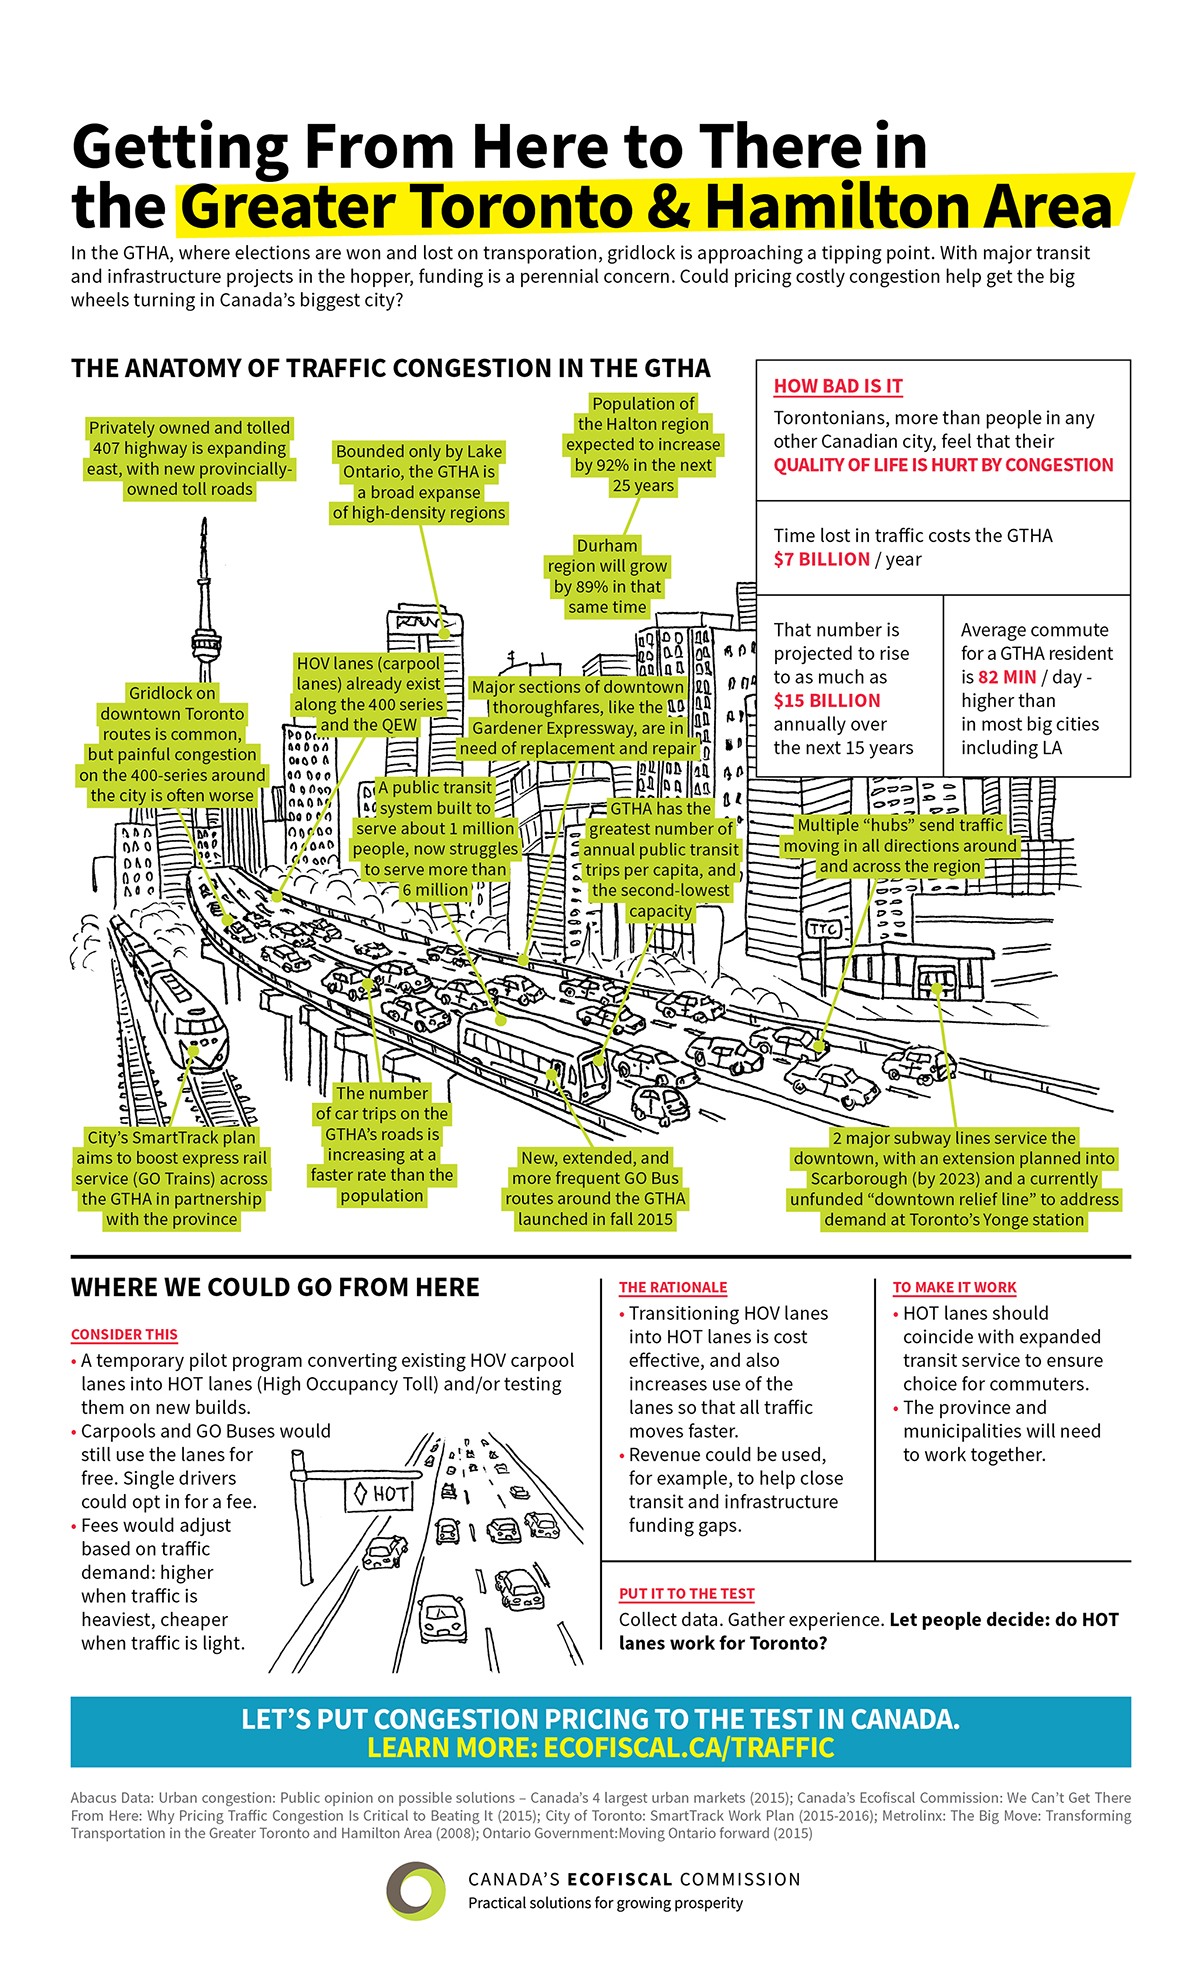 An infographic illustrating the problem with gridlock. Image courtesy Canada's Ecofiscal Commission.